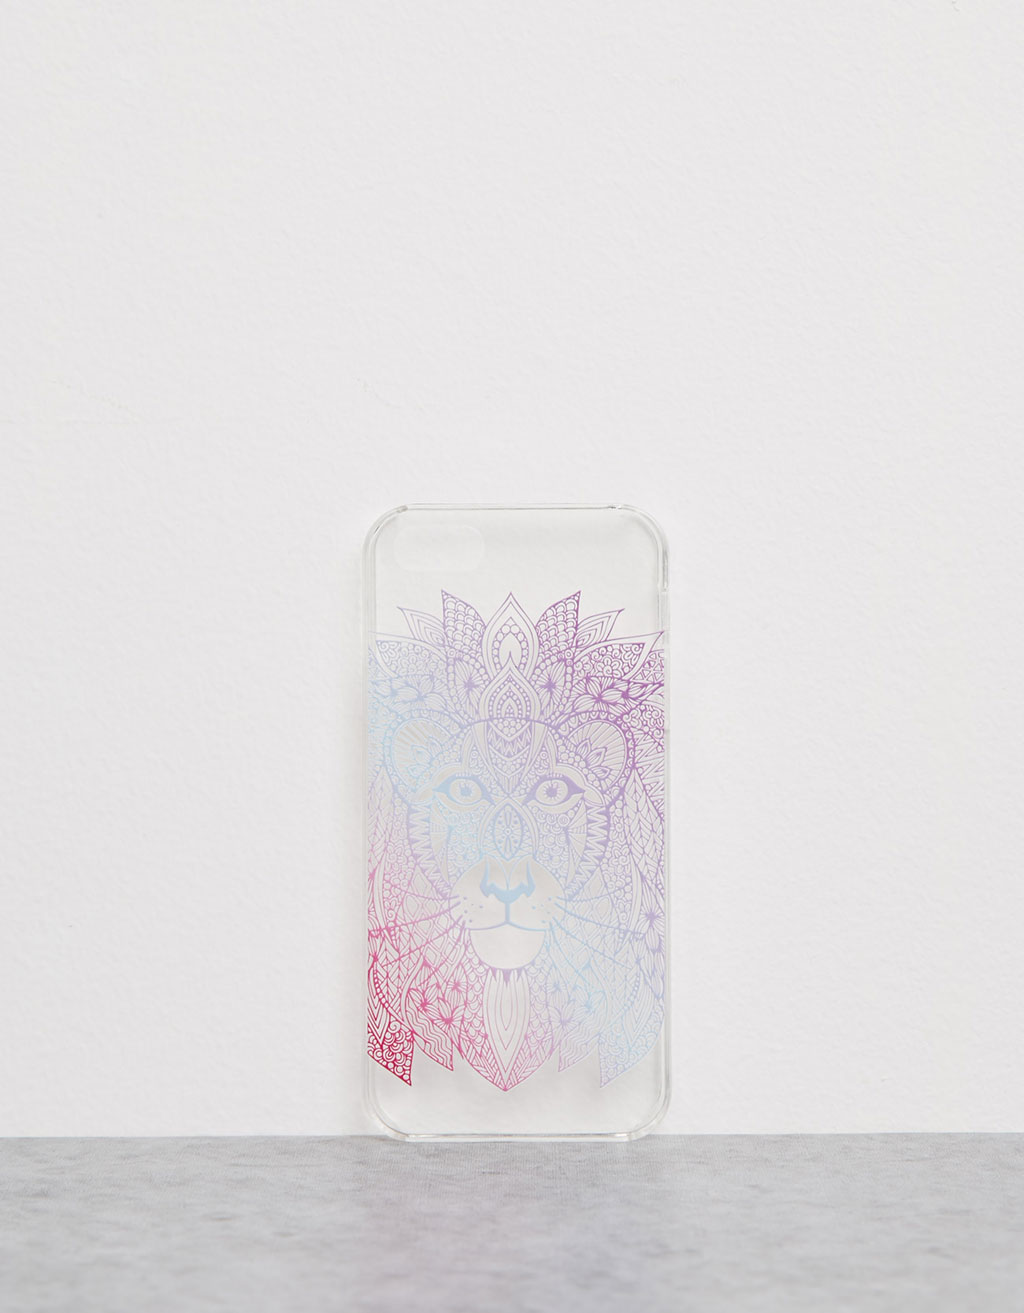 Carcasa transparente 'León étnico' relieve iPhone 5/5s